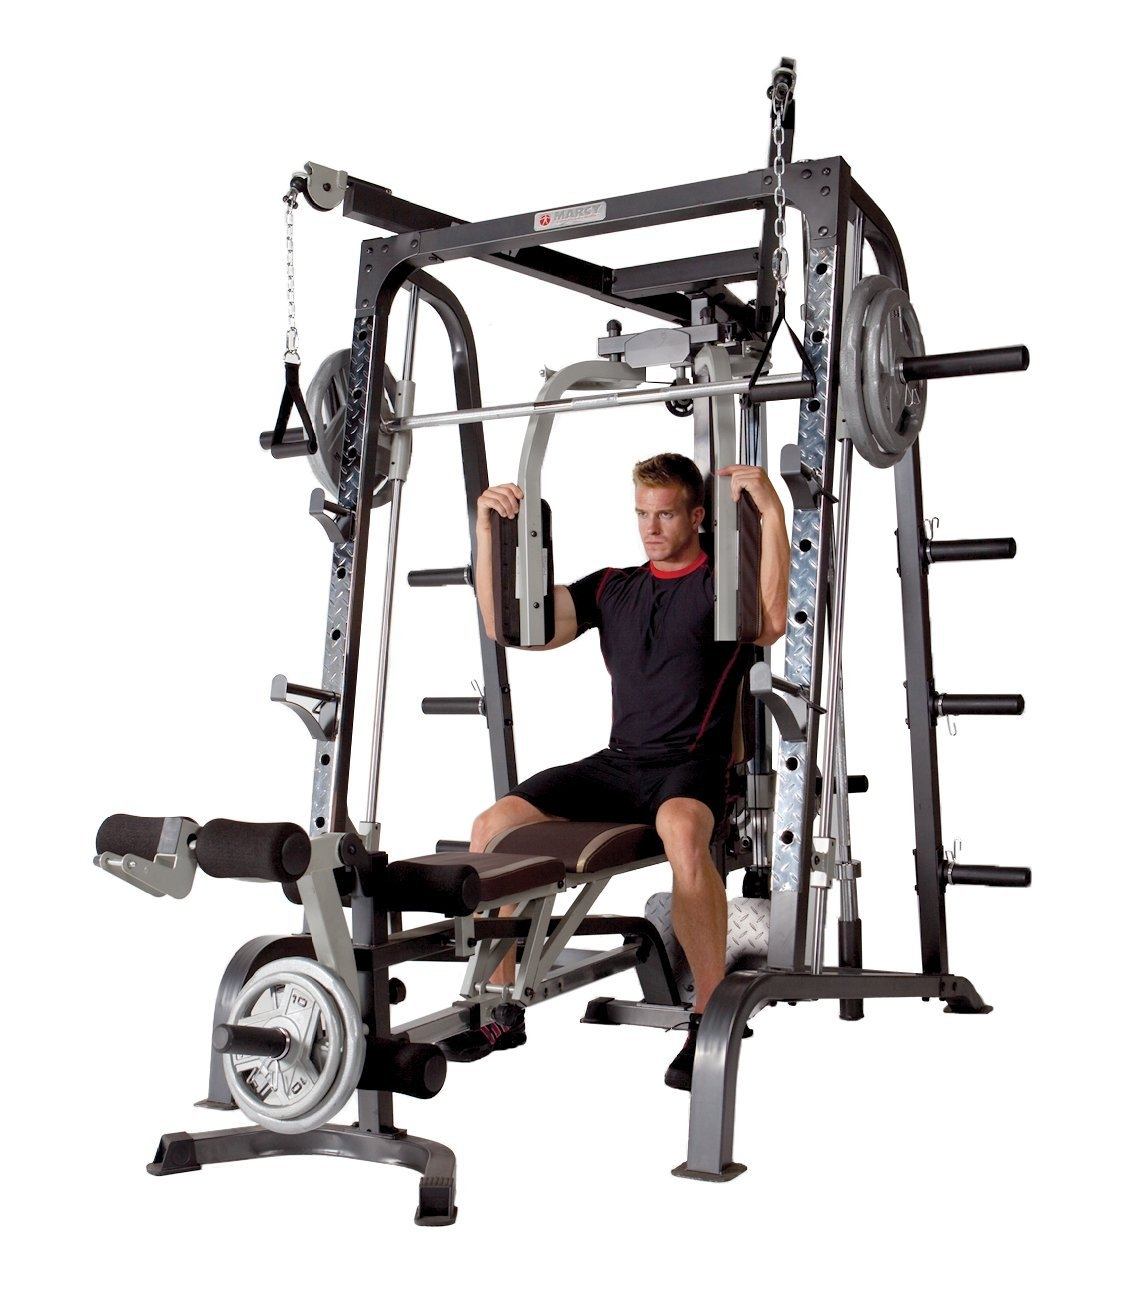 Using the Marcy Smith Machine